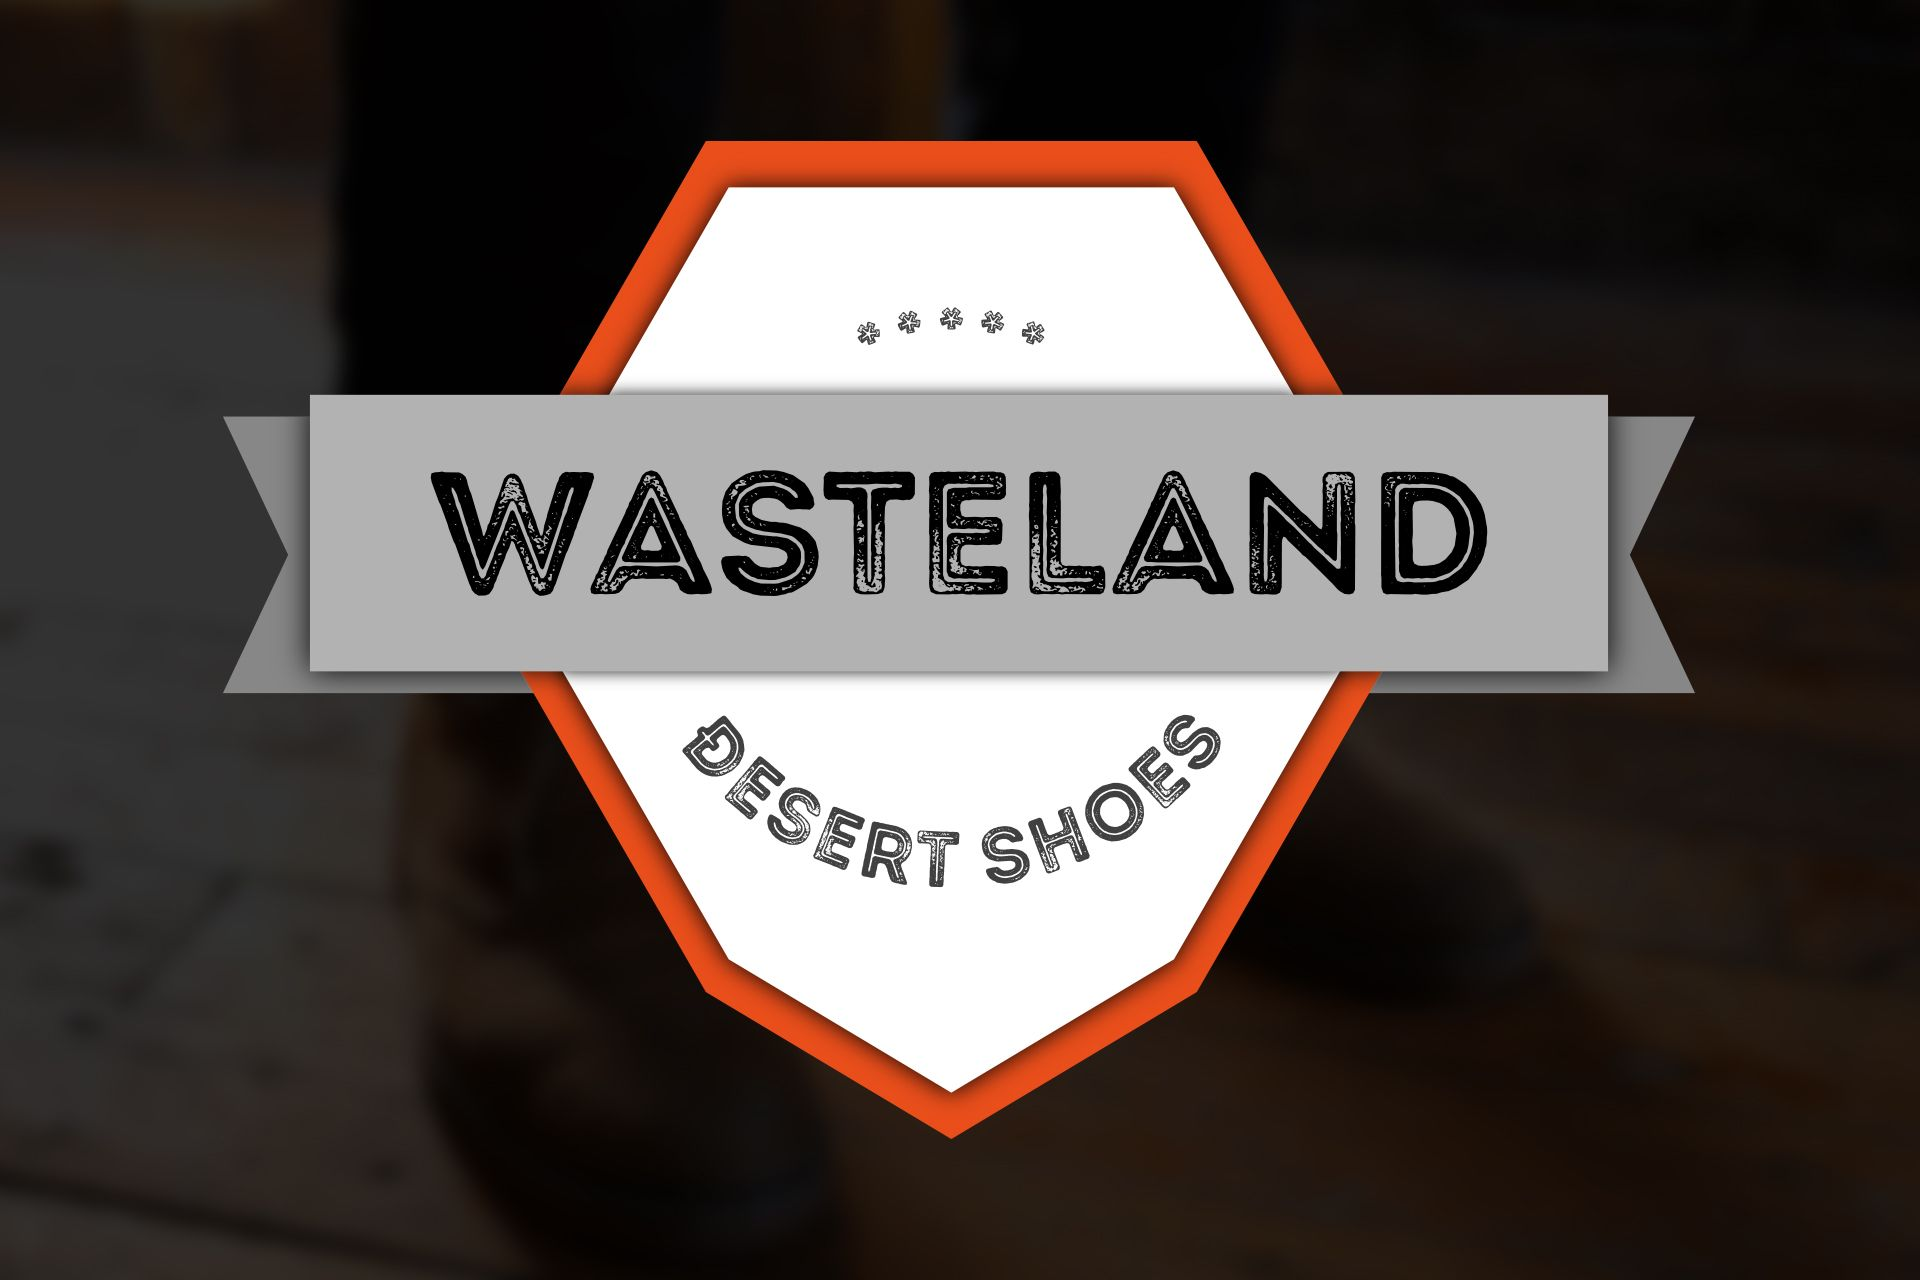 Wasteland. Shoes trademark